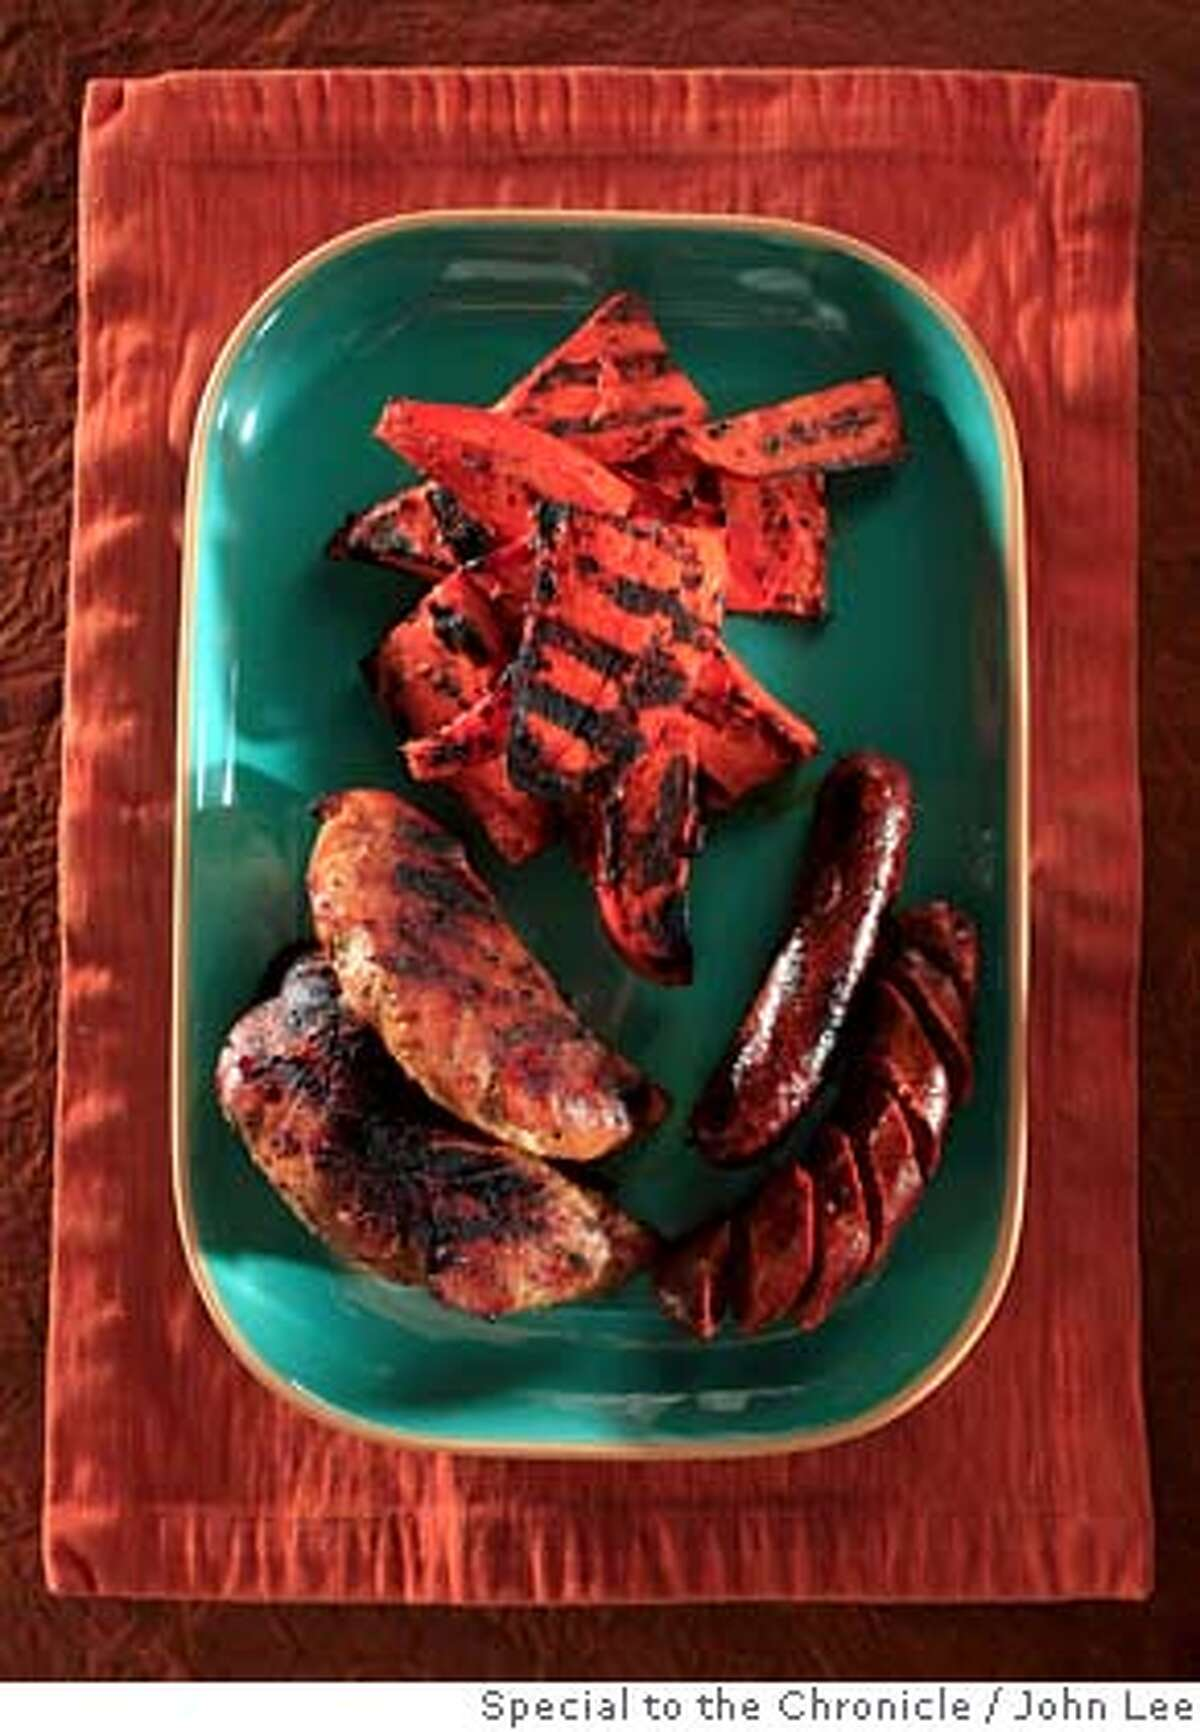 ###Live Caption:TURKEY_JOHNLEE.JPG APRIL 24, 2008: Grilled turkey dish. BY JOHN LEE / SPECIAL TO THE CHRONICLE###Caption History:TURKEY_JOHNLEE.JPG APRIL 24, 2008: Grilled turkey dish. BY JOHN LEE / SPECIAL TO THE CHRONICLE###Notes:###Special Instructions: